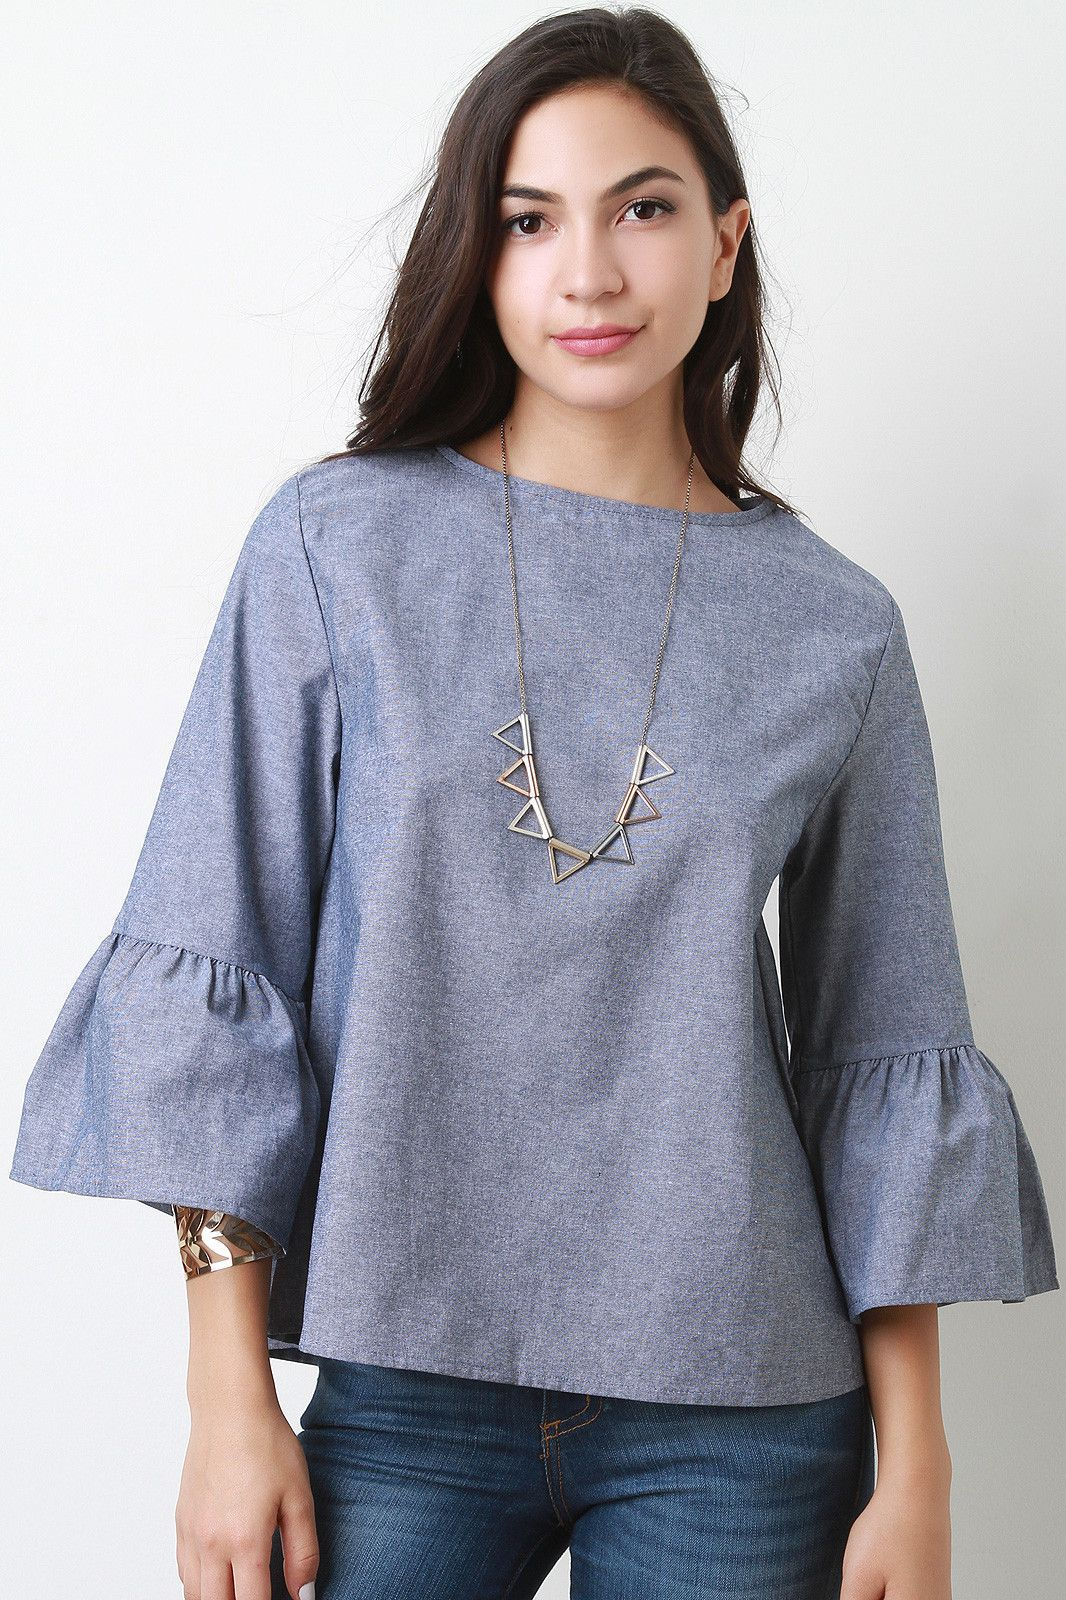 Chambray Bell Sleeve Top. This top features chambray denim fabric ...